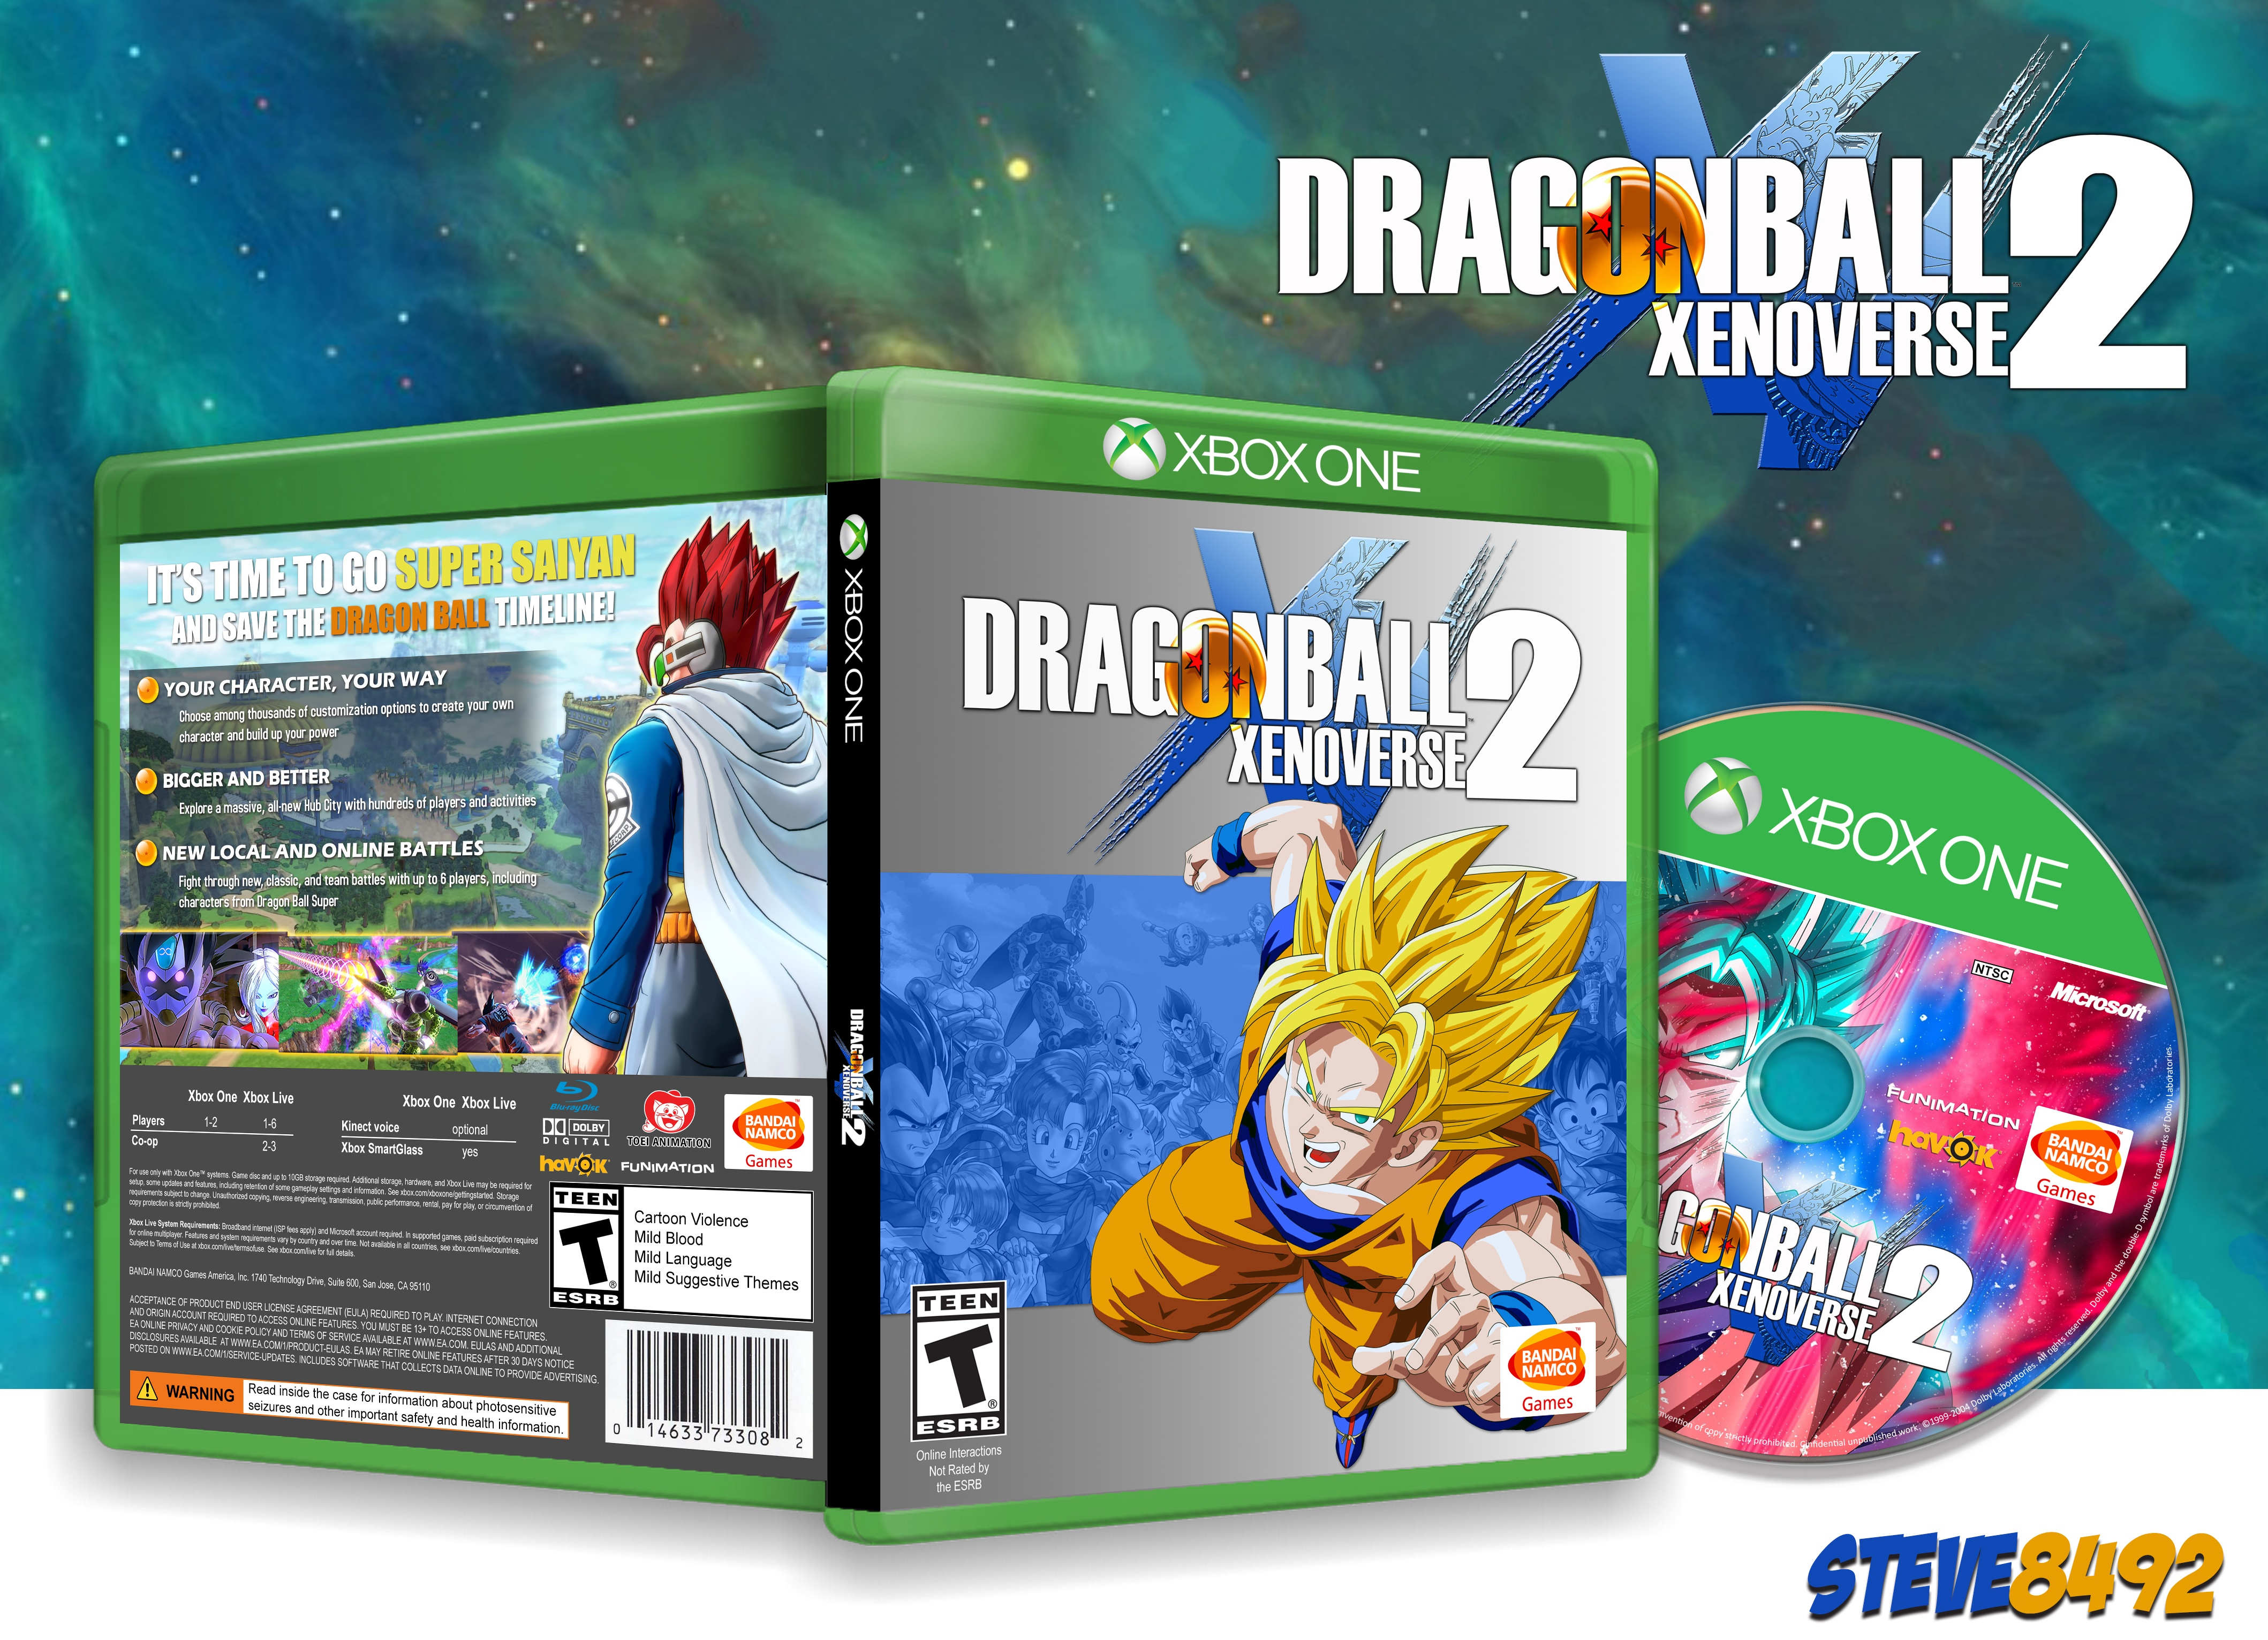 Dragon Ball Xenoverse 2 box cover